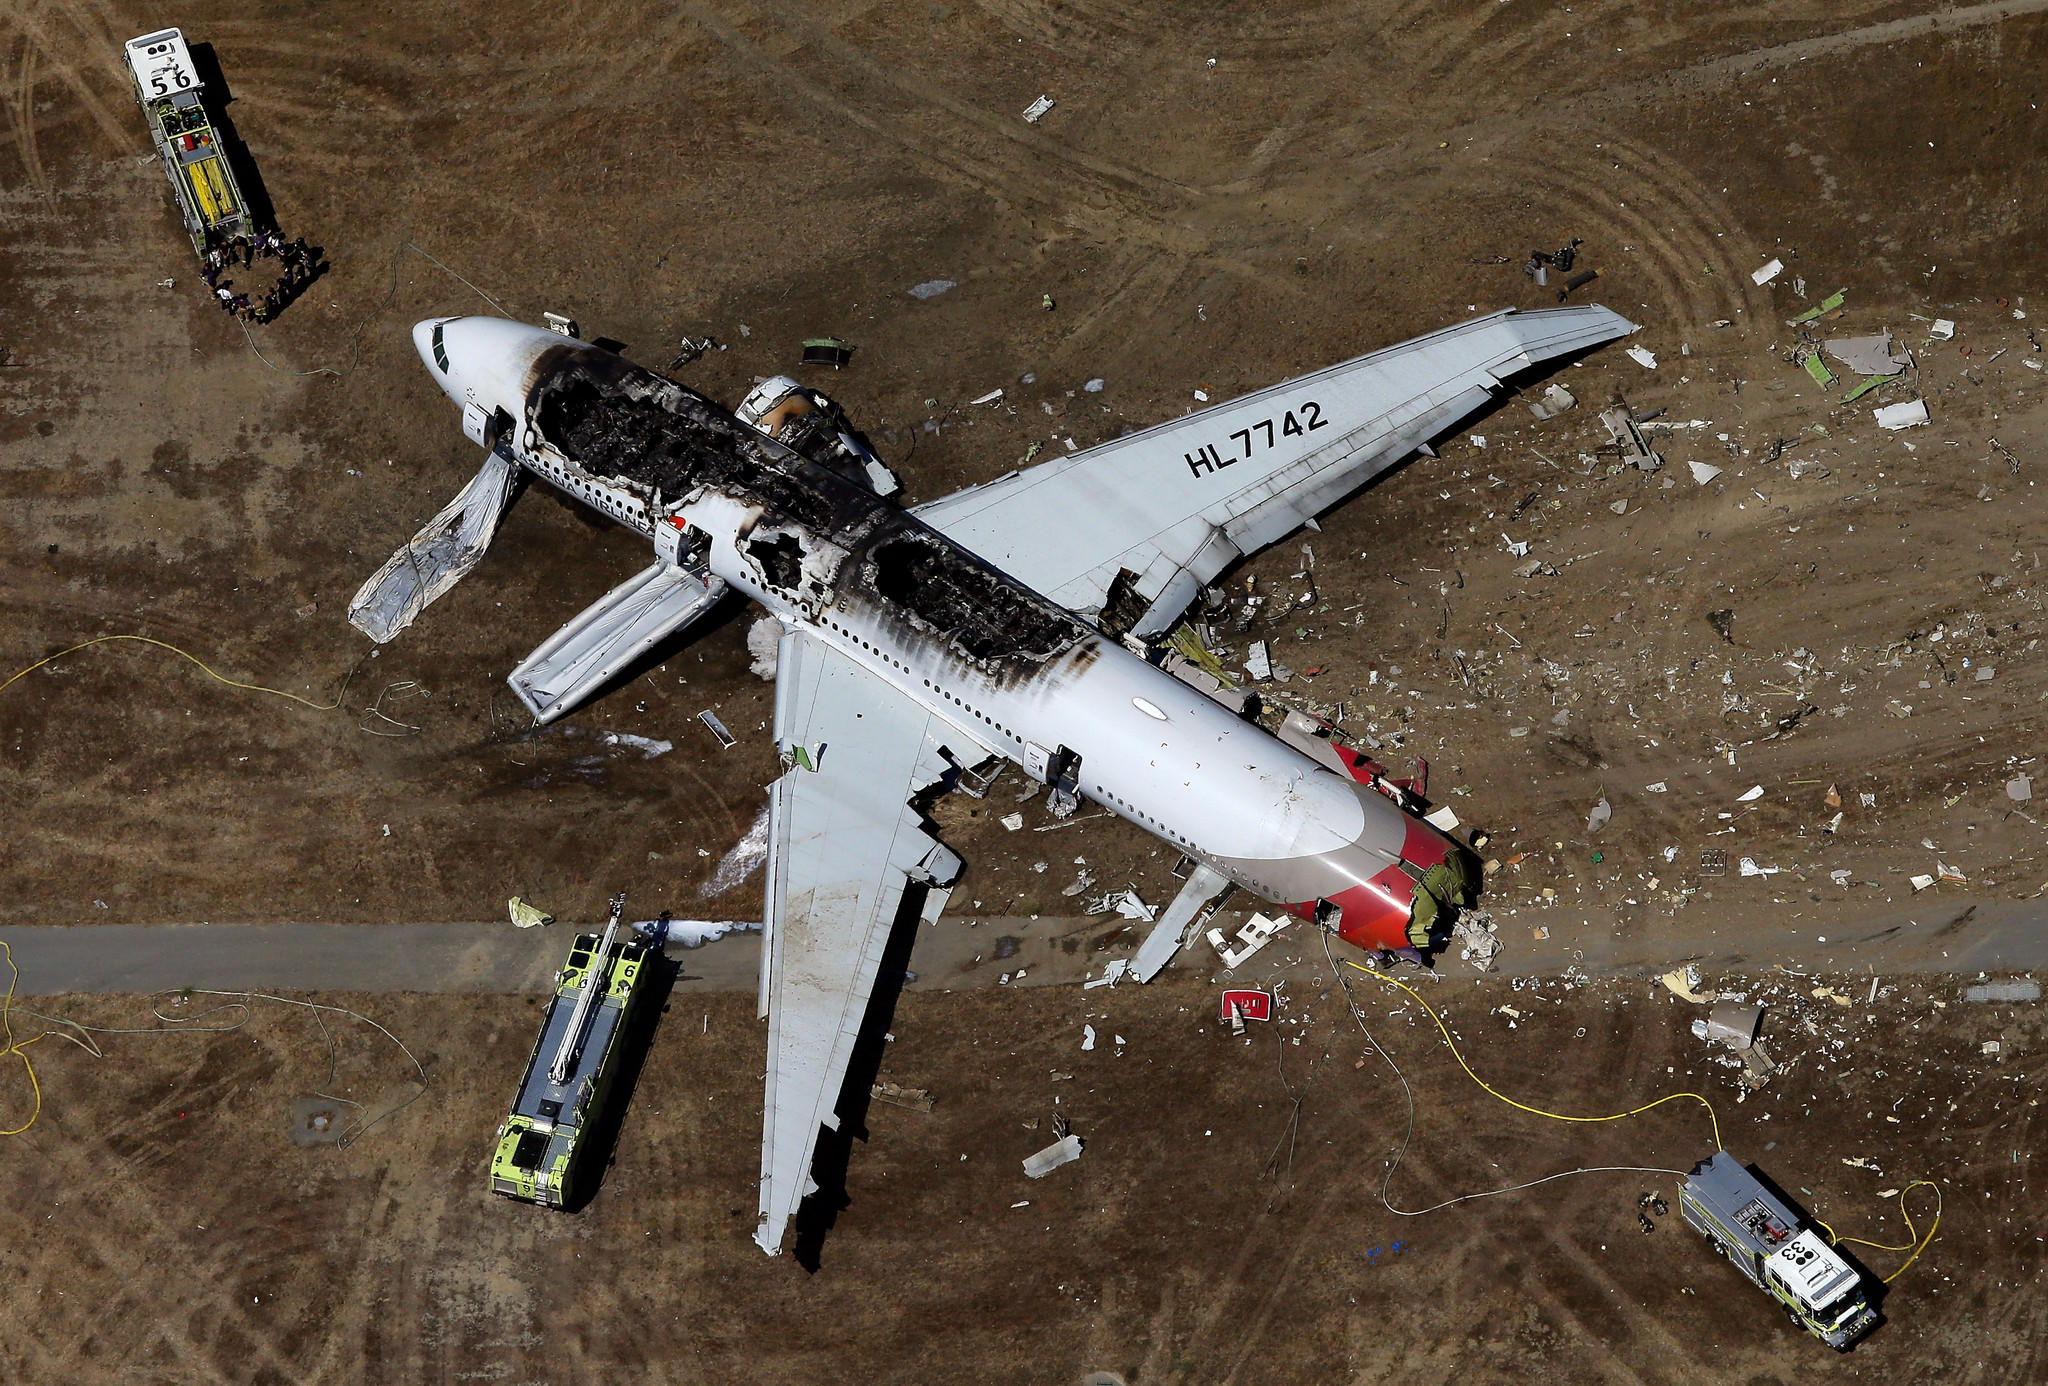 SAN FRANCISCO, CA - JULY 06: A Boeing 777 airplane lies burned on the runway after it crash landed at San Francisco International Airport July 6, 2013 in San Francisco, California.